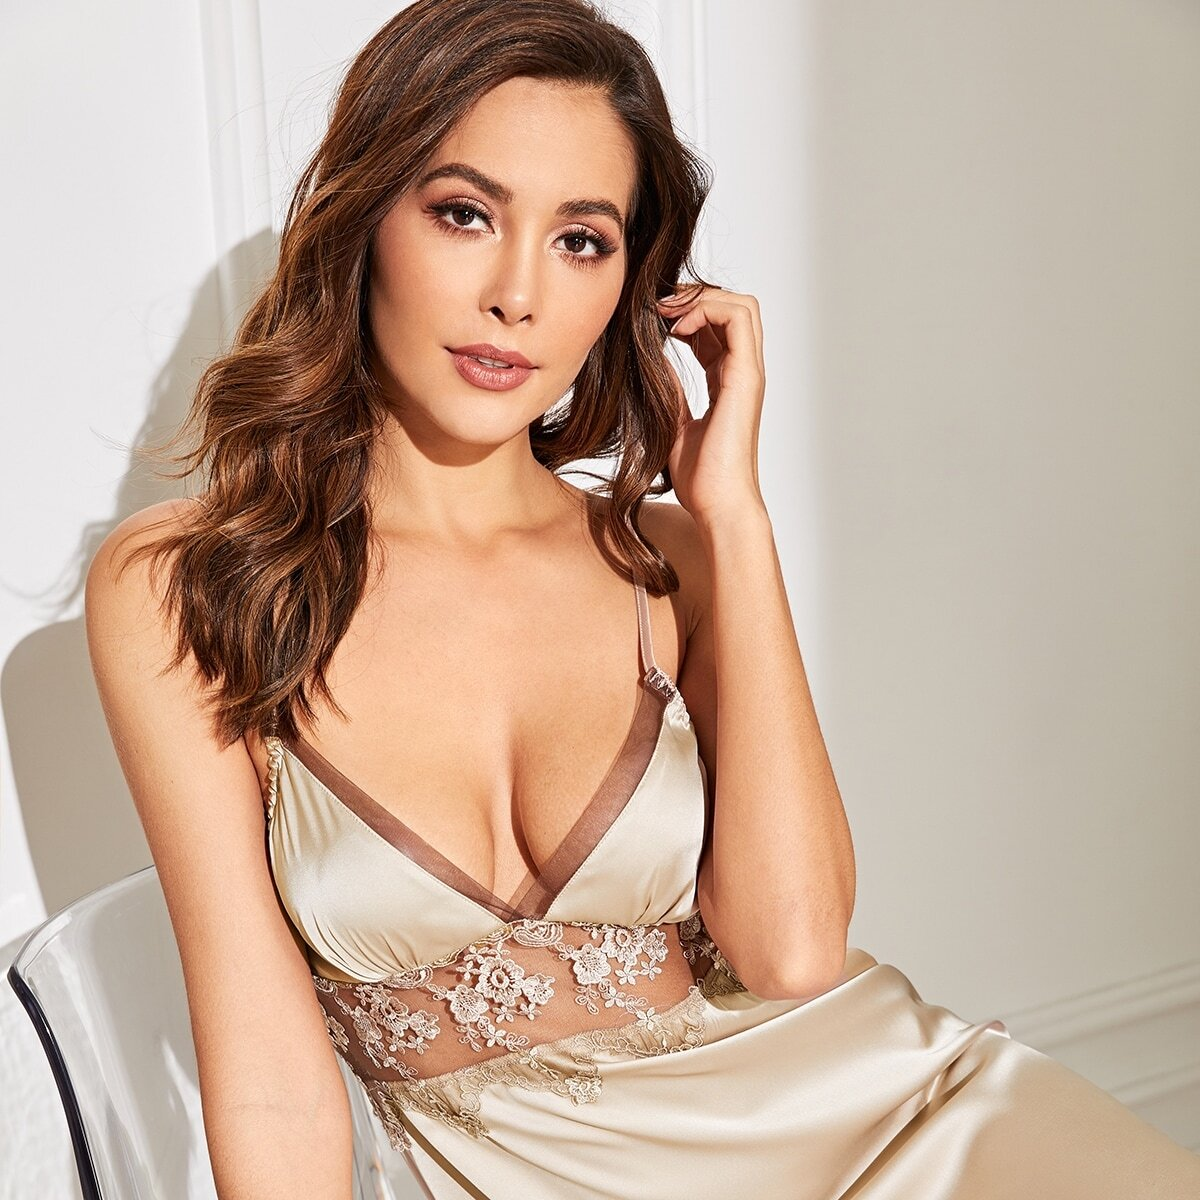 Champagne Sexy Bloemen Lounge kleding Contract kant